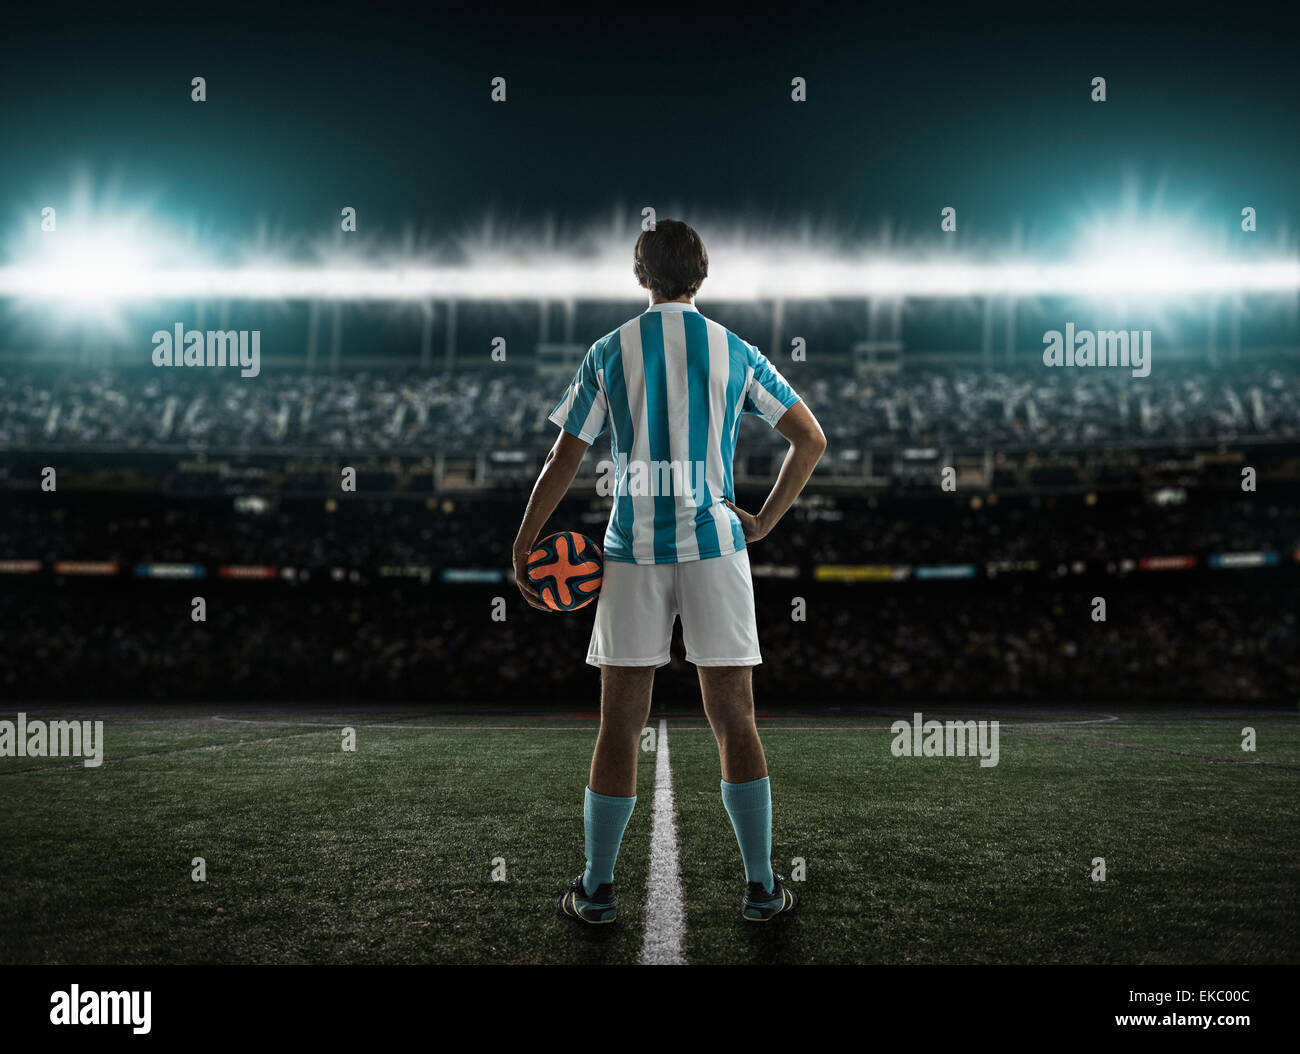 Footballer waiting for kick off - Stock Image